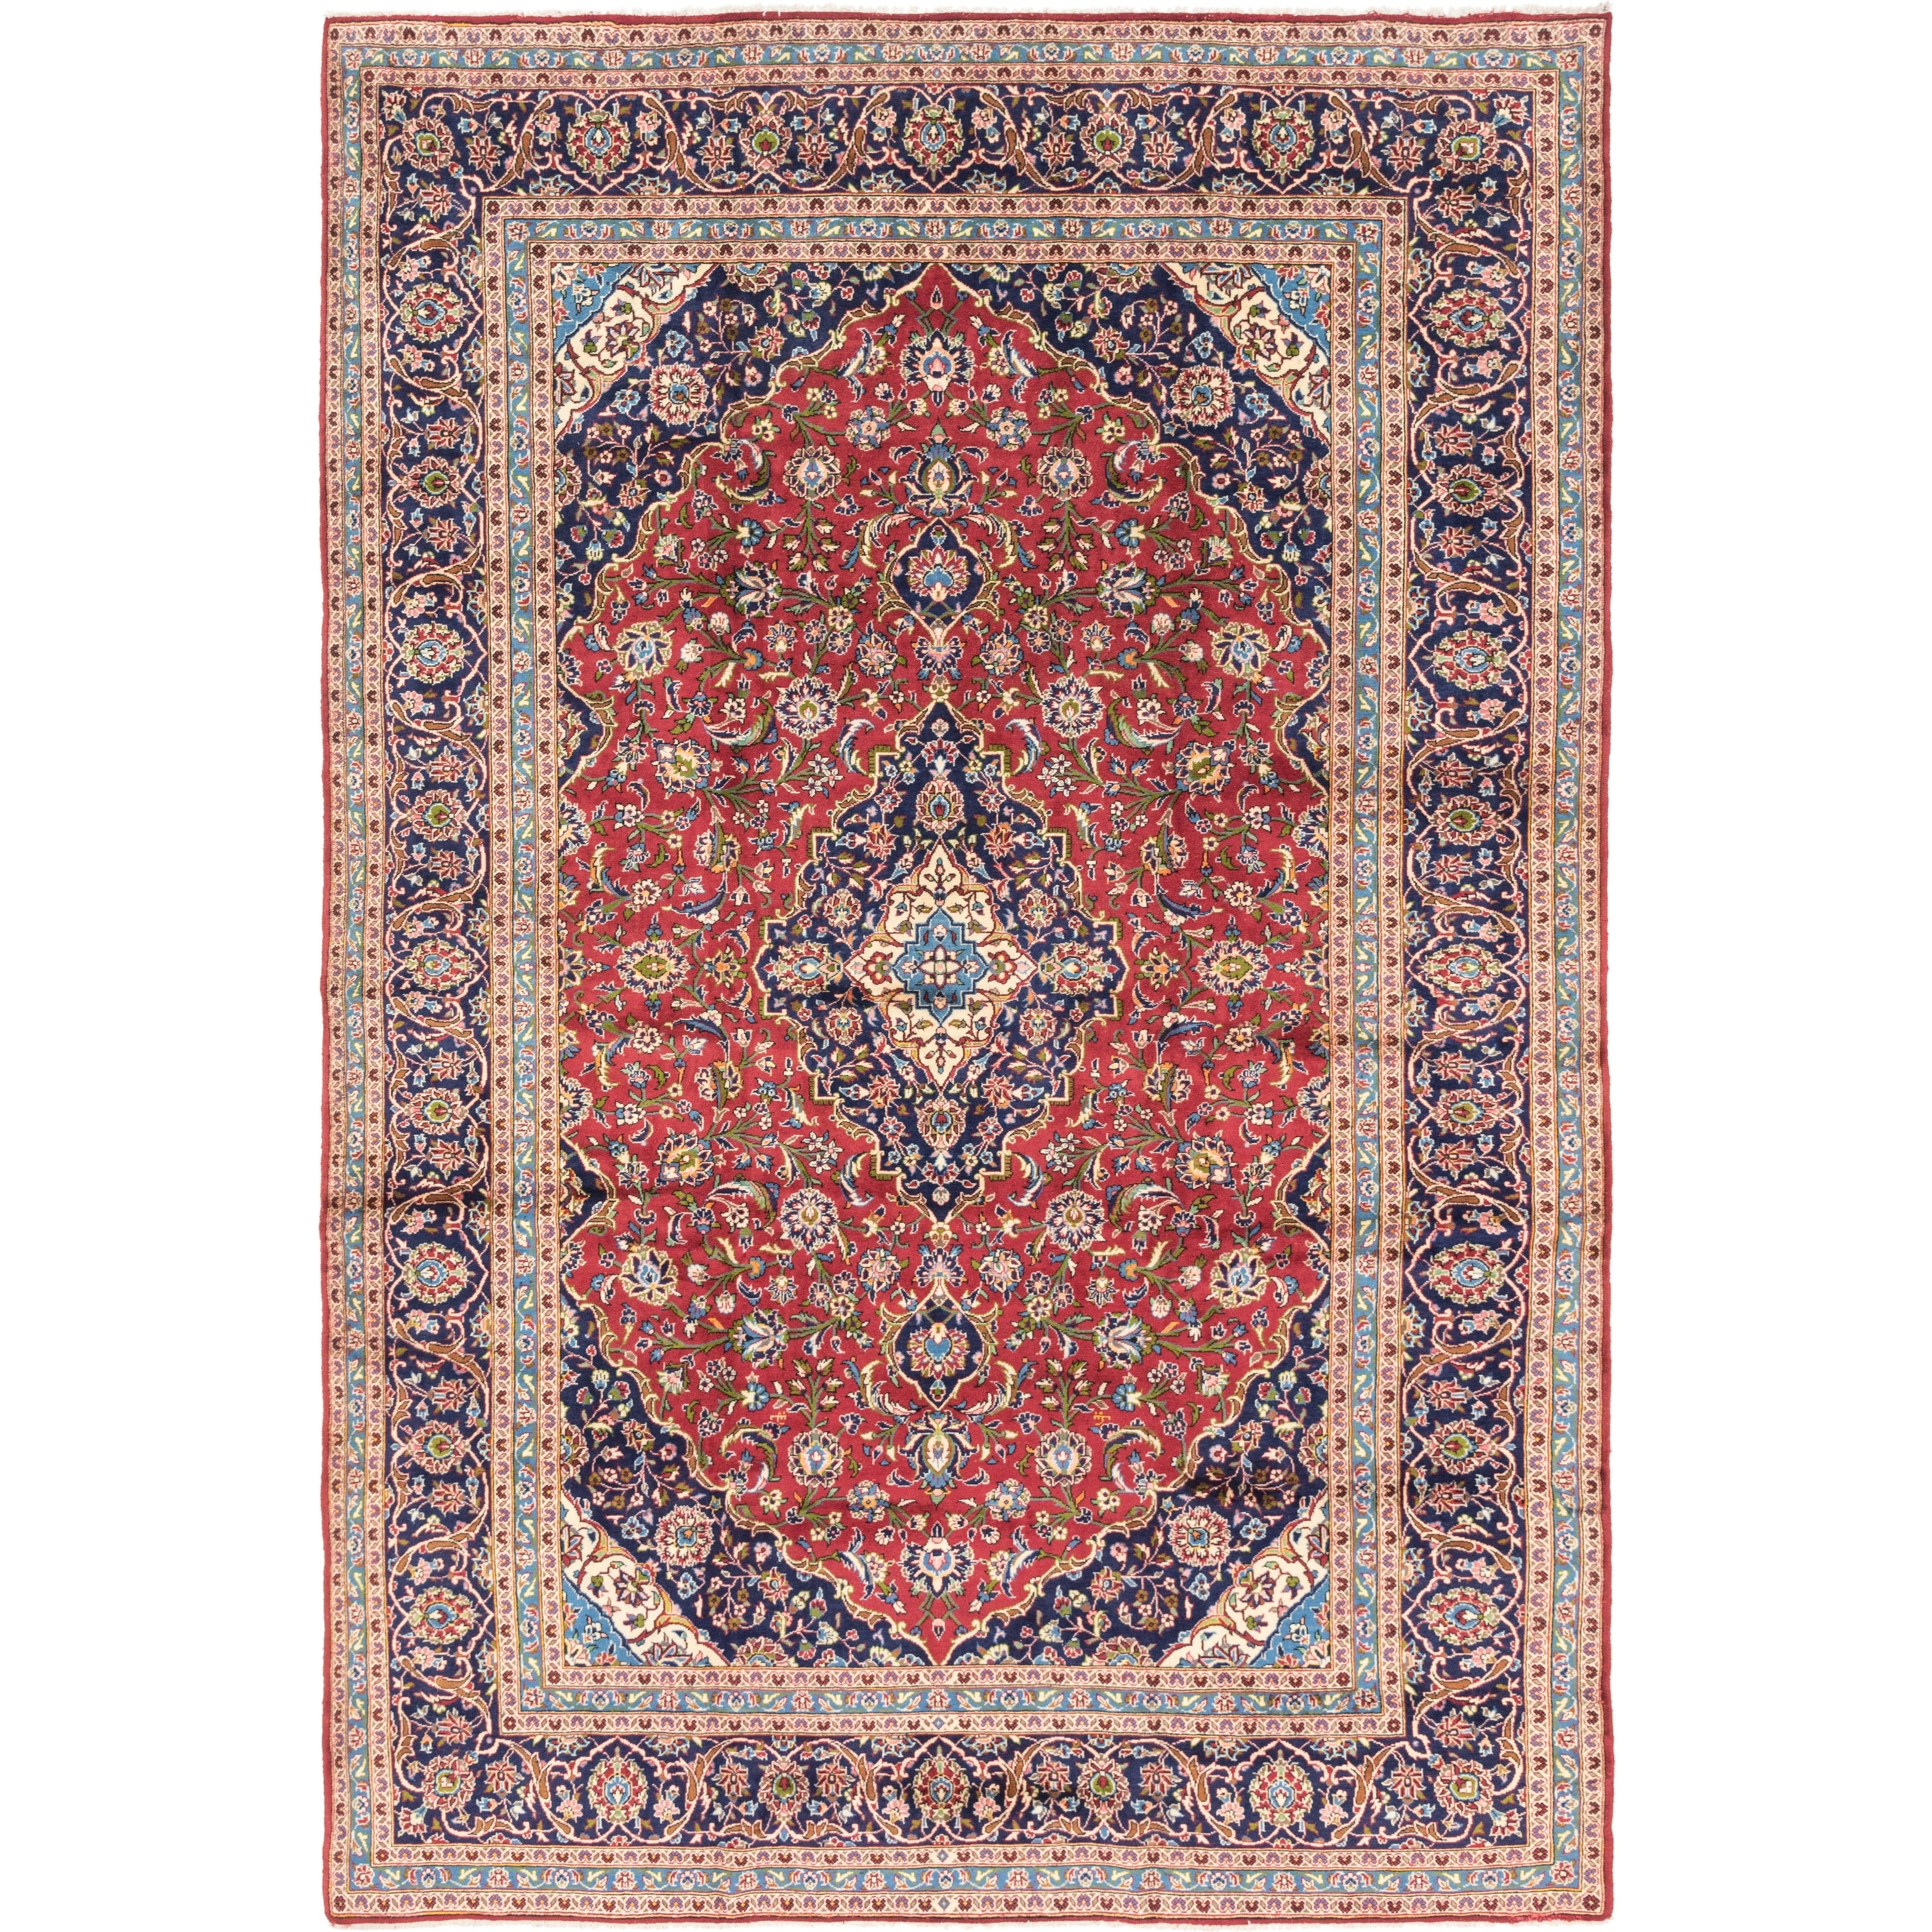 Hand Knotted Kashan Wool Area Rug - 9 6 x 14 2 (Red - 9 6 x 14 2)